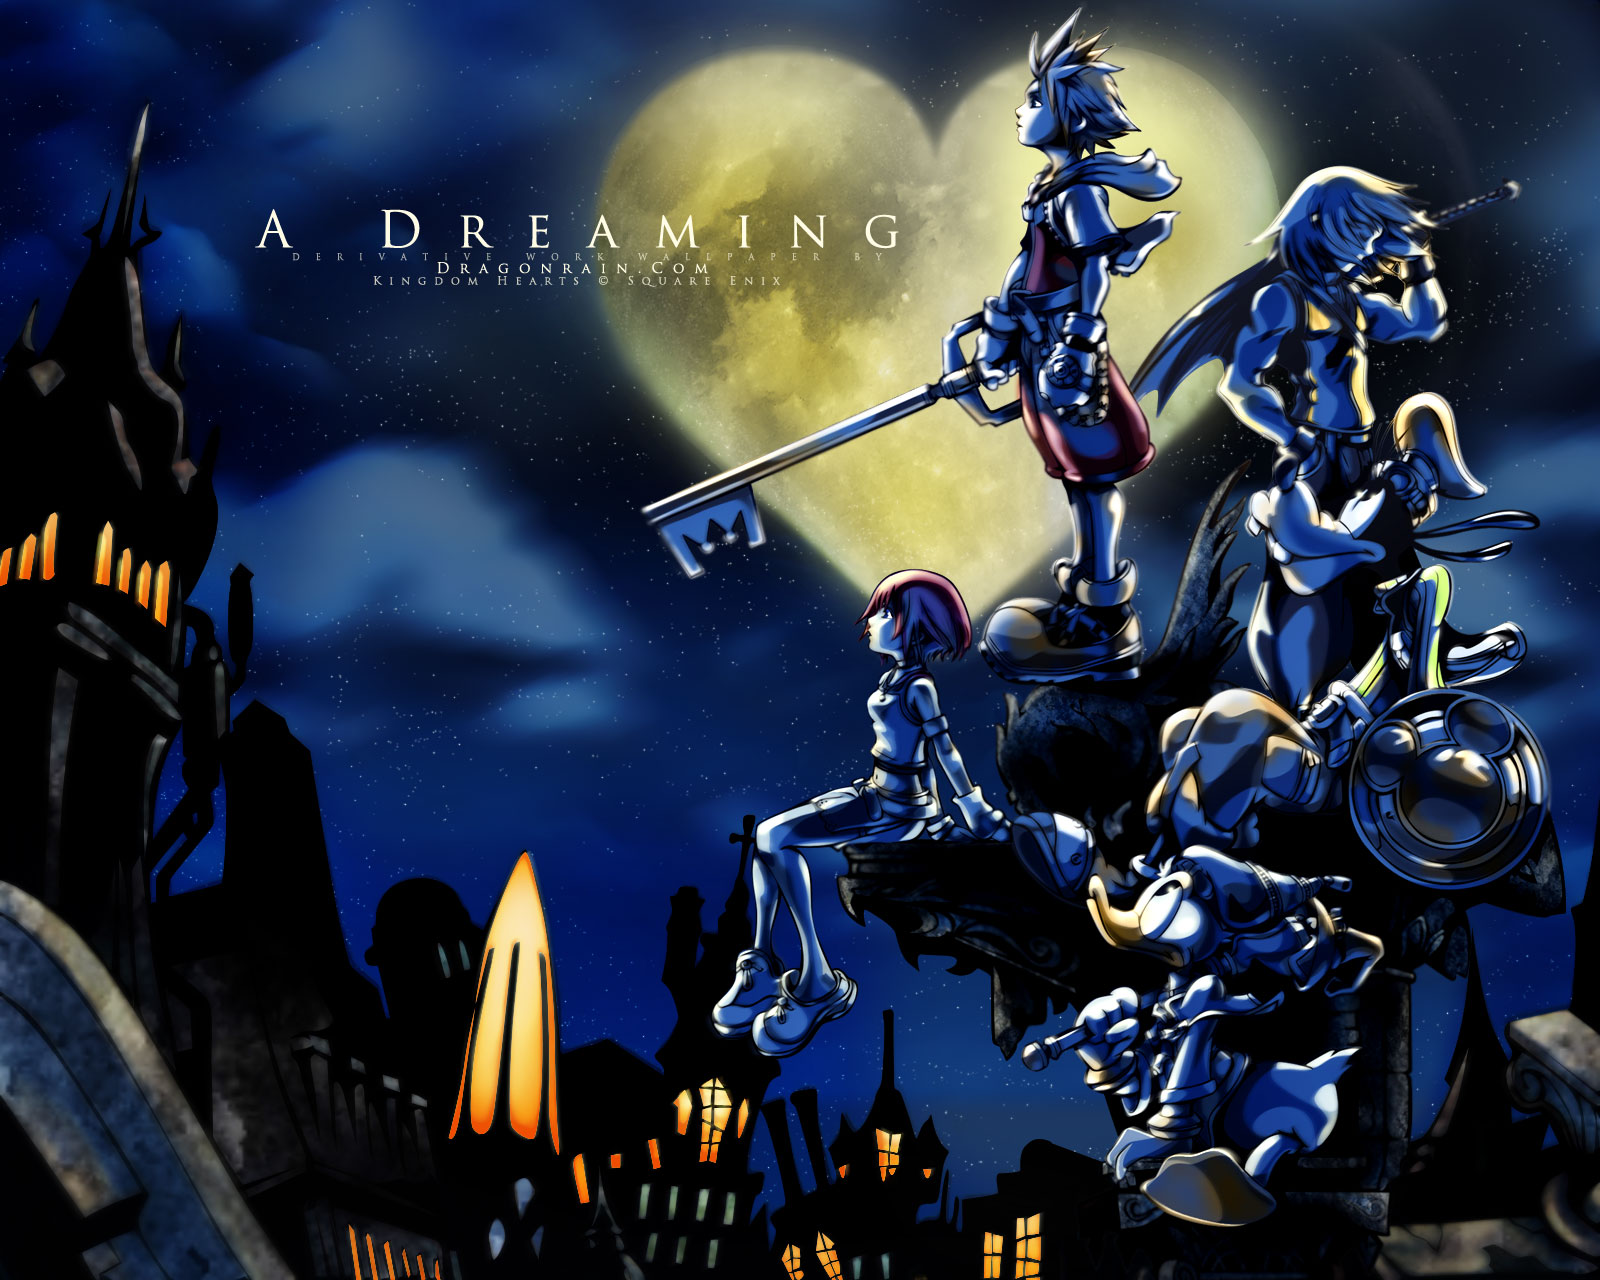 Kingdom Hearts   Fandoms Wallpaper 31616011 1600x1280